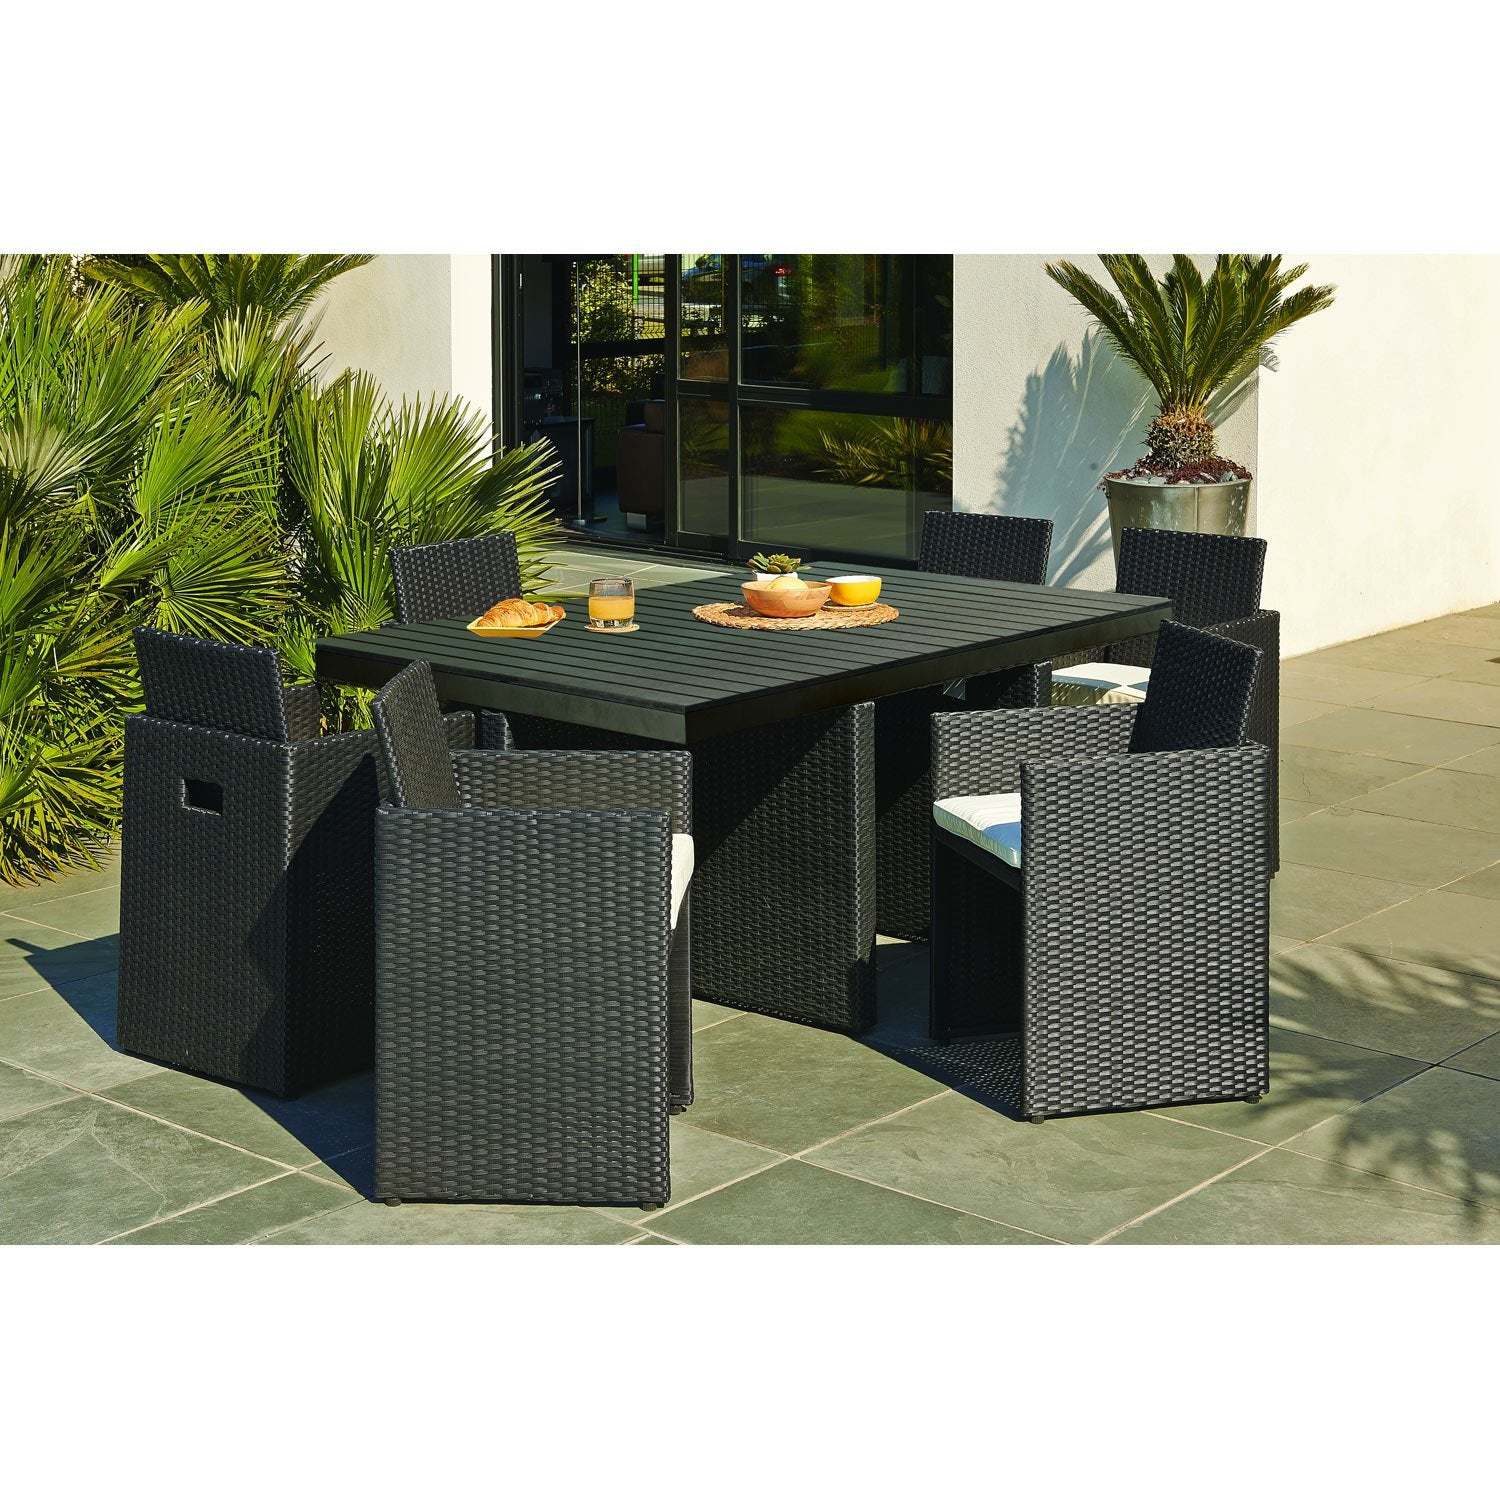 Salon de jardin encastrable r sine tress e noir 1 table 6 fauteuils leroy merlin - Salon de jardin alu hesperide ...